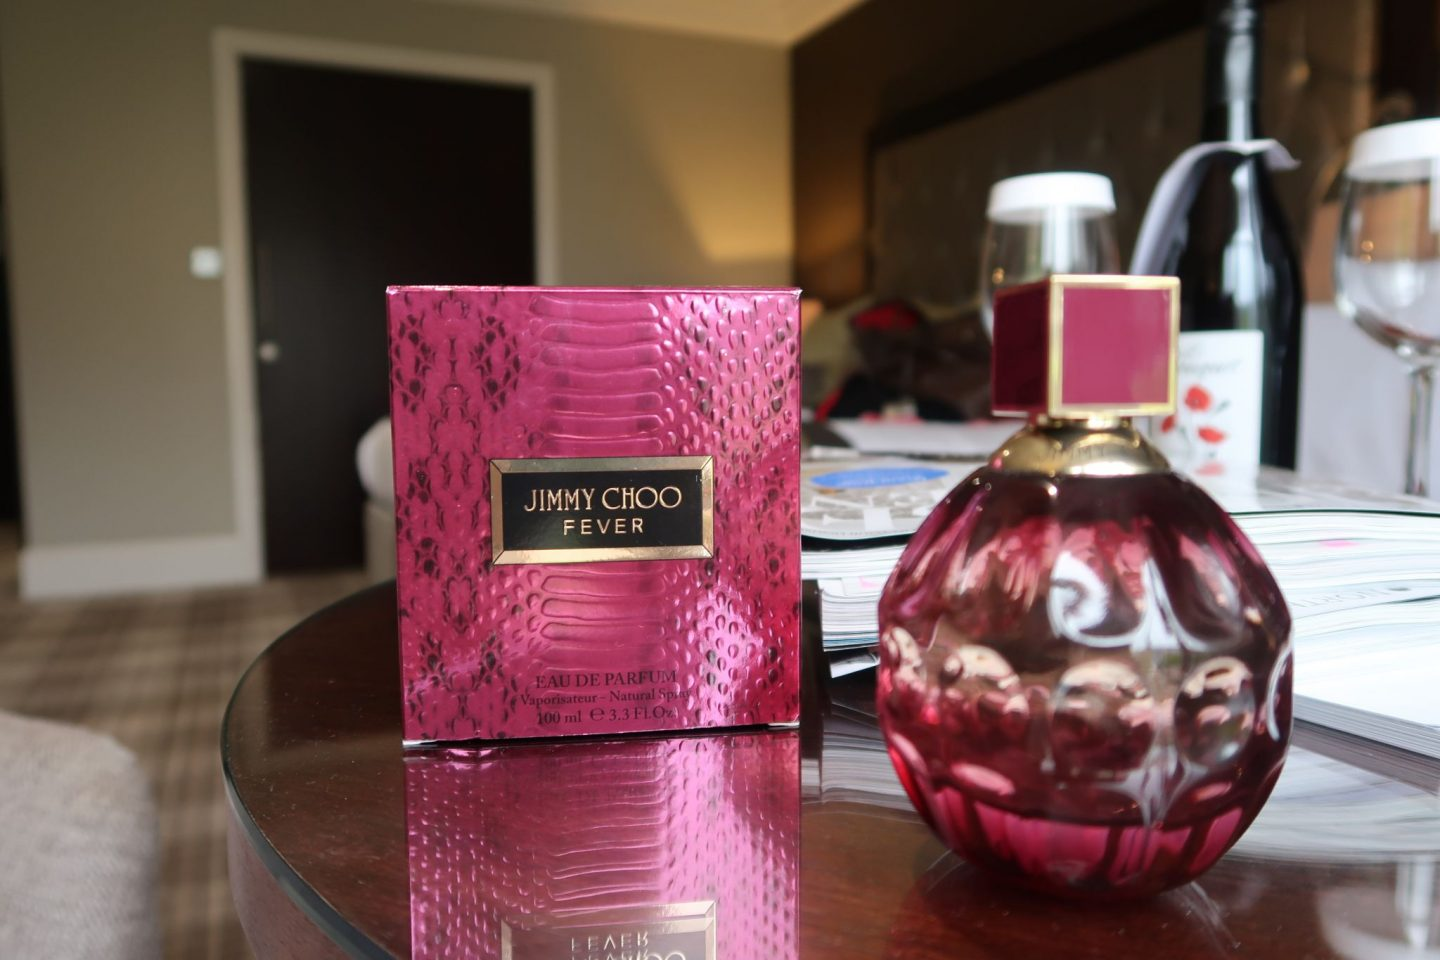 Jimmy Choo Fever Fragrance Review WhatLauraLoves